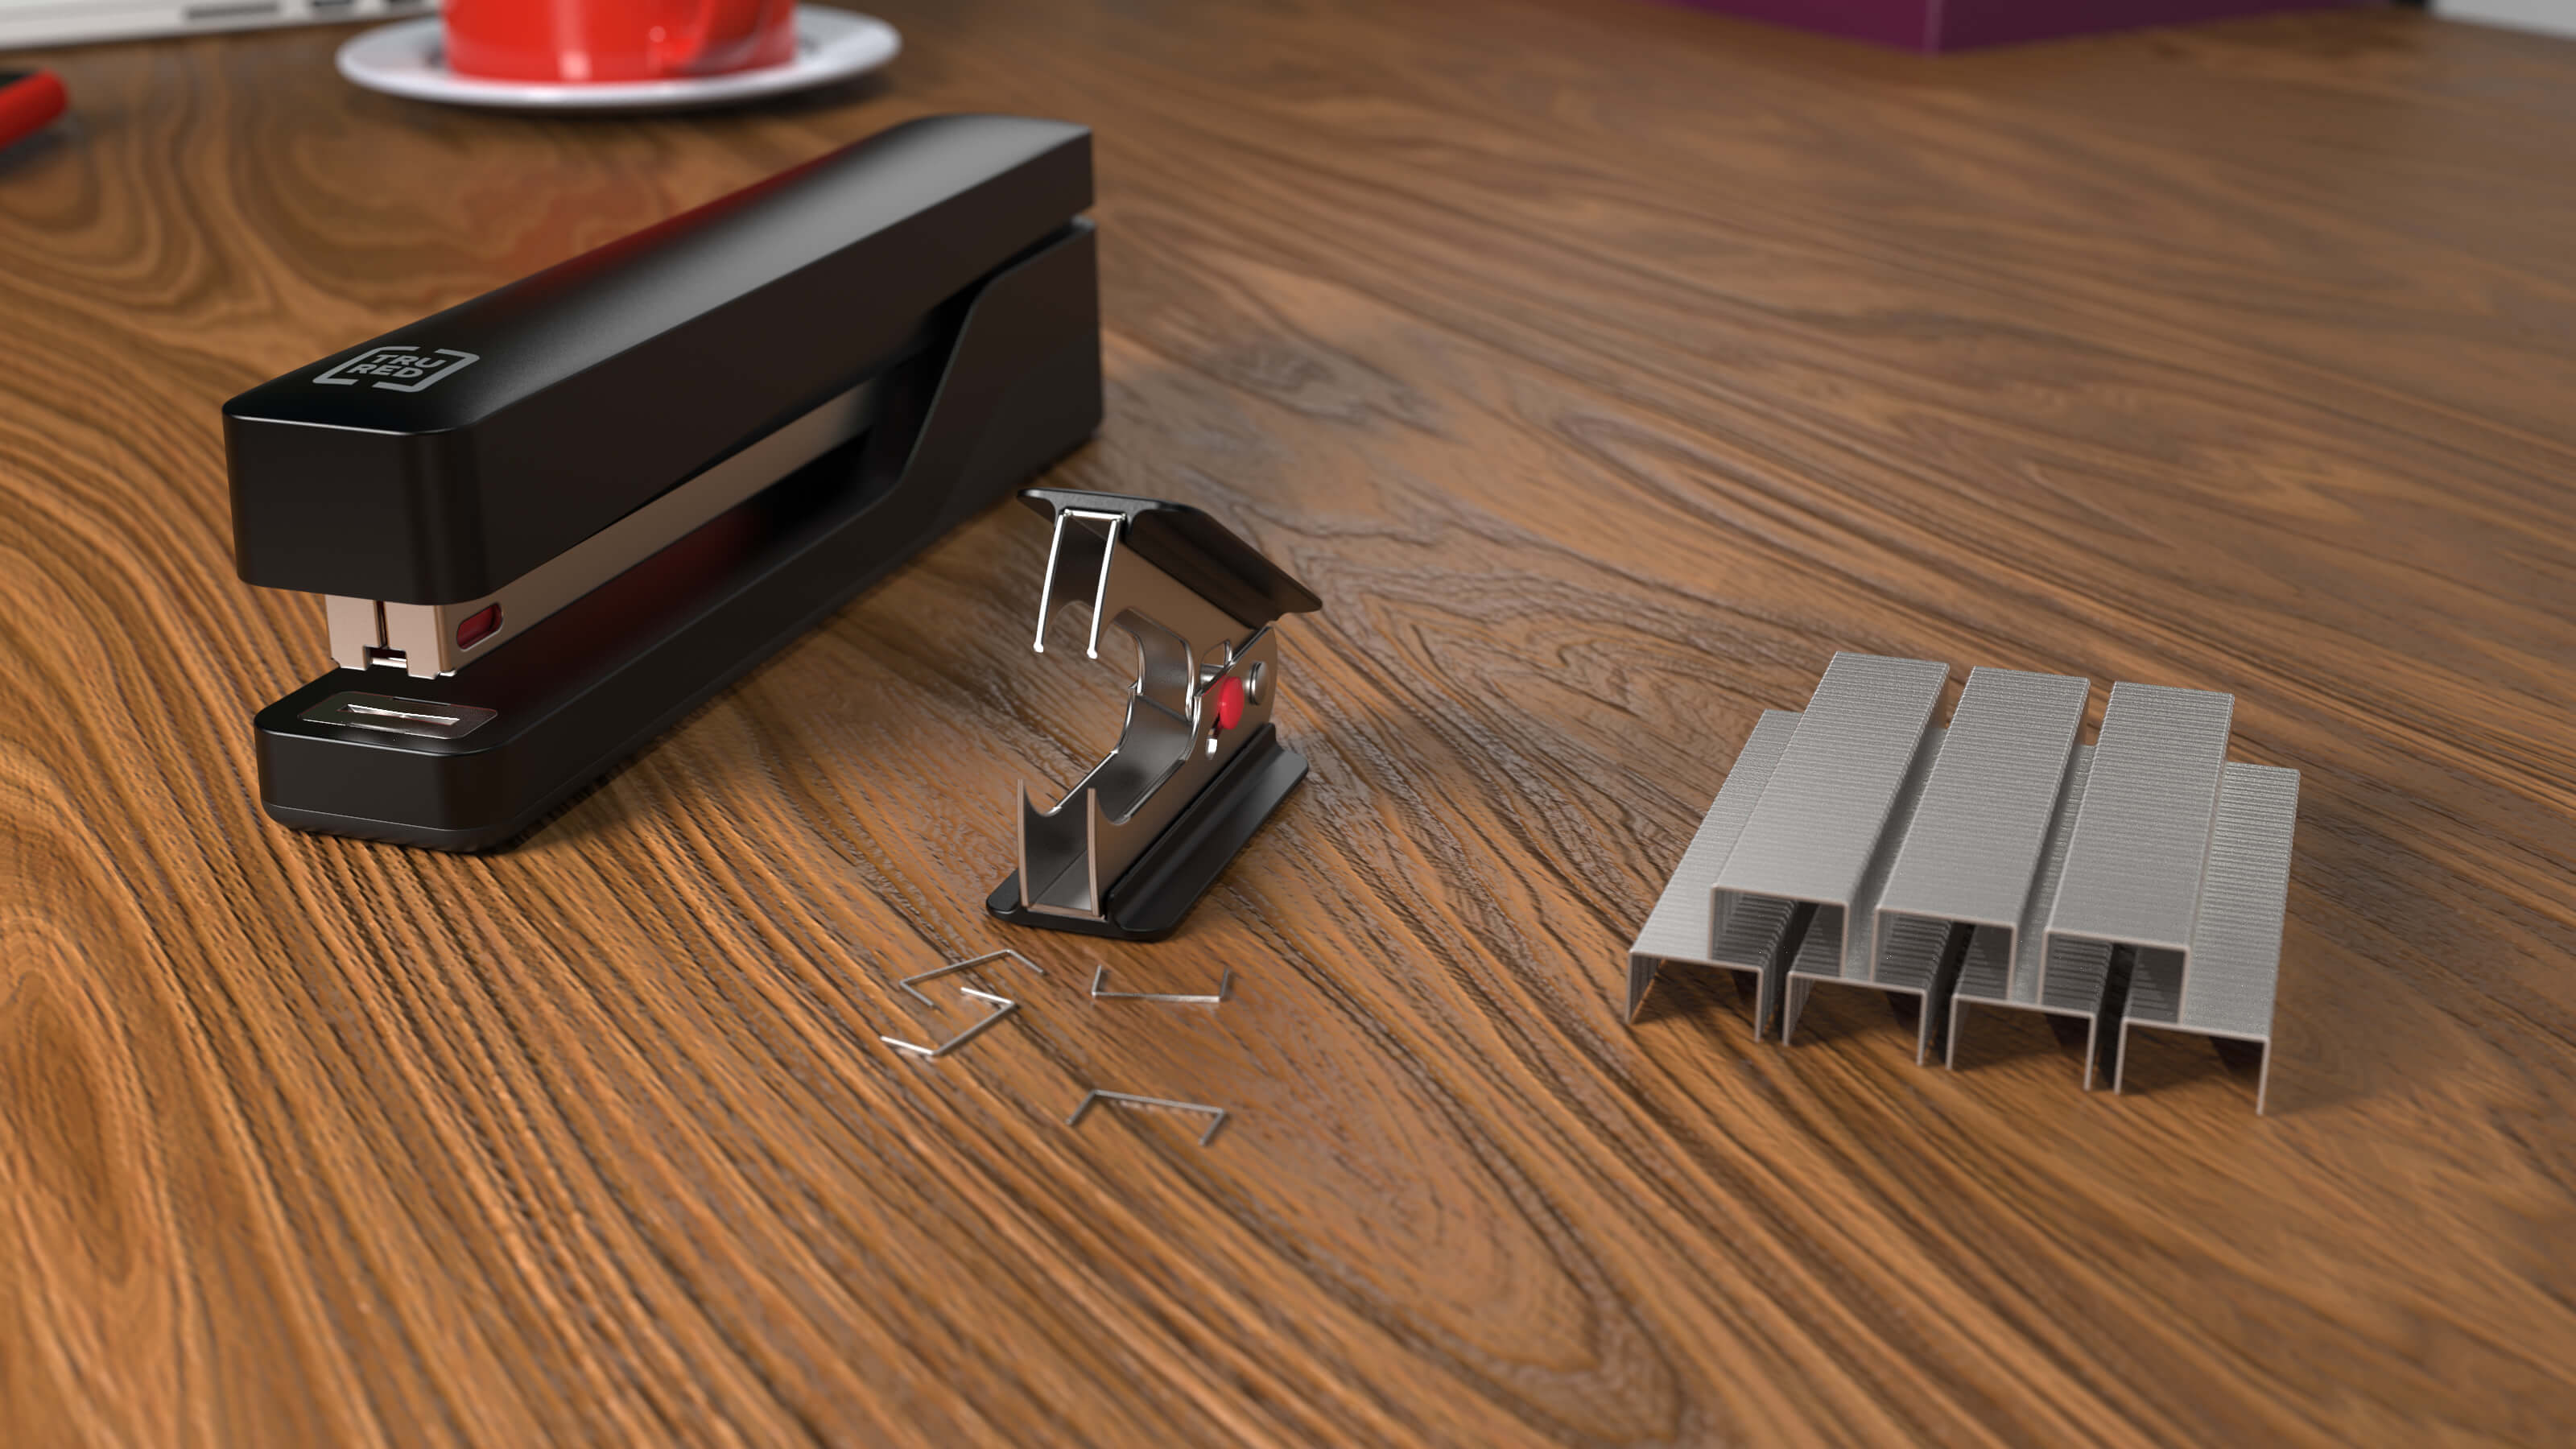 3D CAD Render by Sprout Studios of a stapler and staples